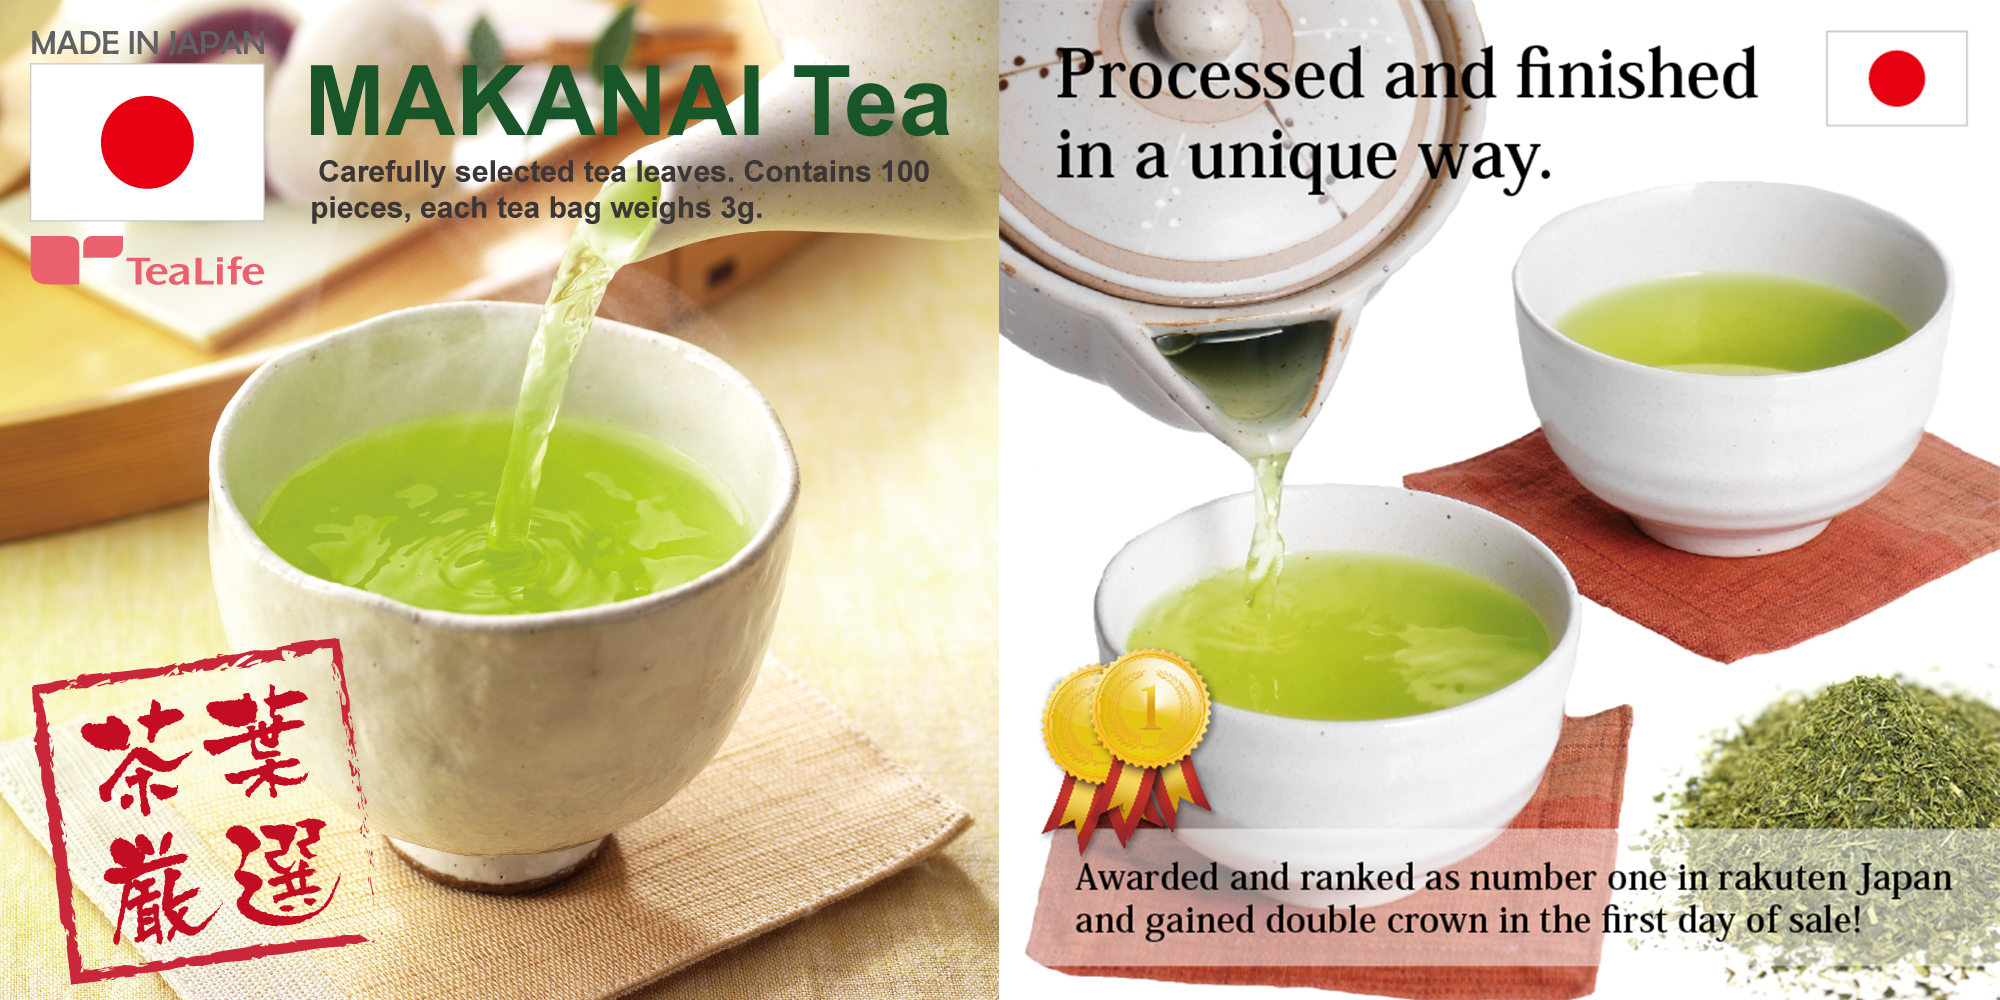 Makanai Tea - Japanese Green Tea: Tea life shop health tea natural food